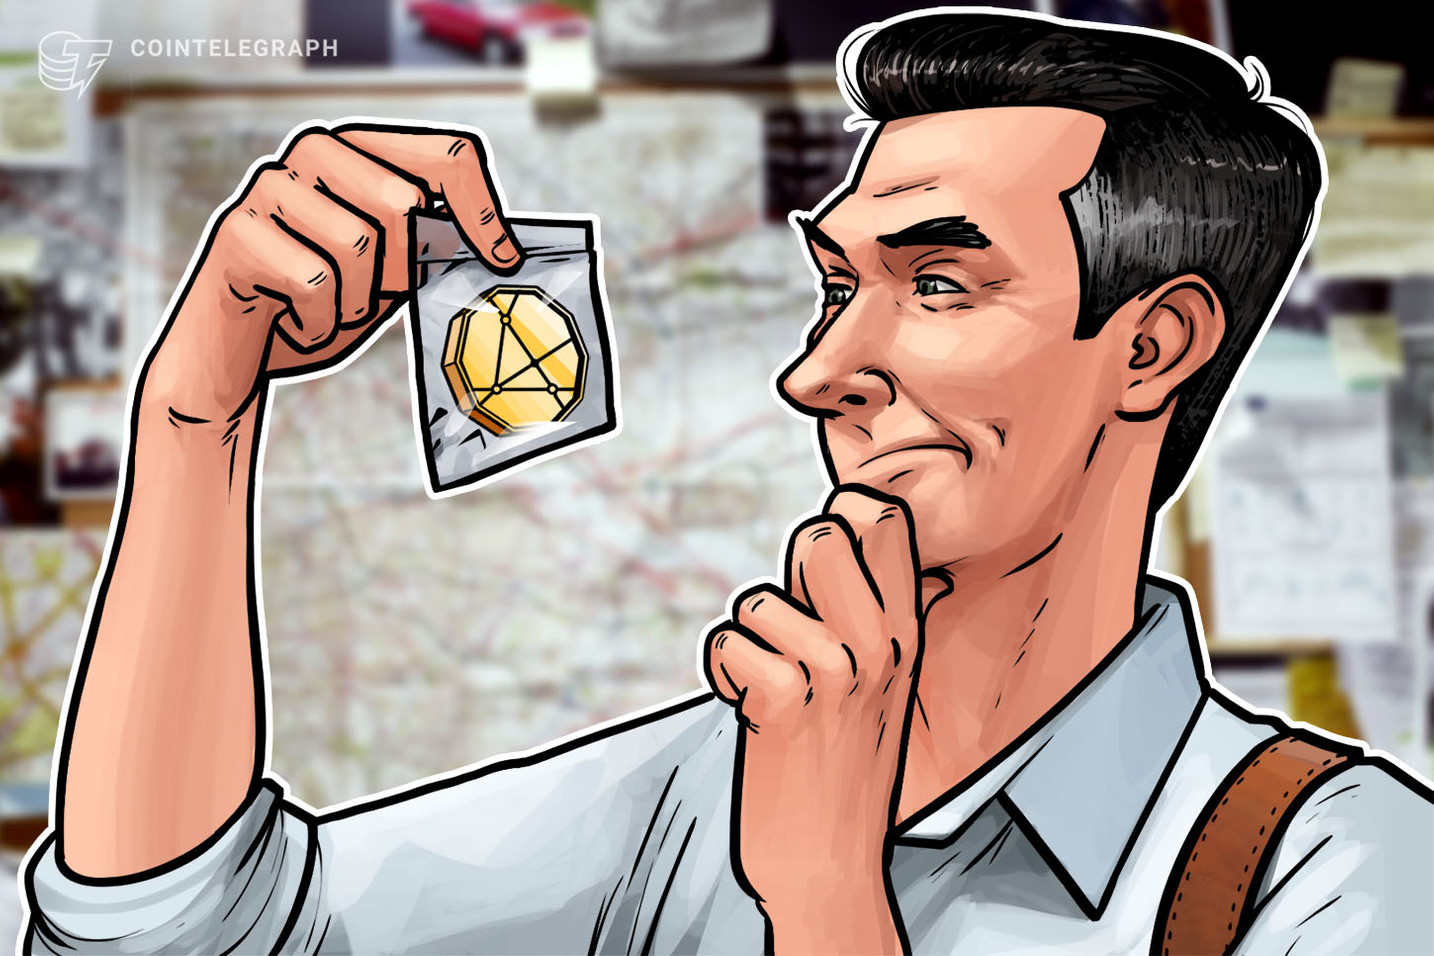 UK's Tax Authority Requests User Data From Crypto Exchanges: Report